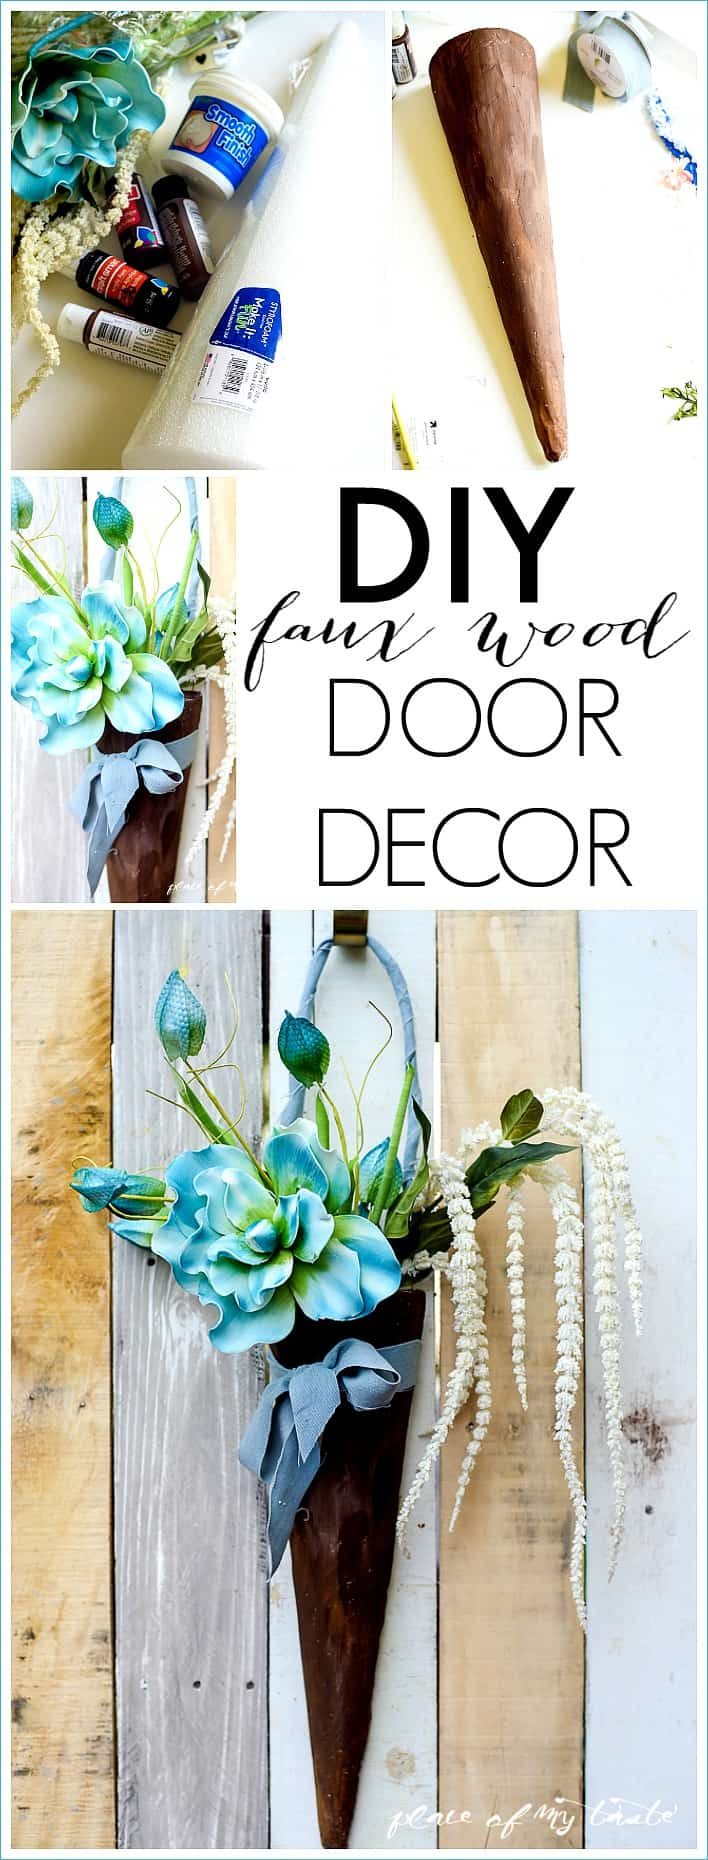 diy faux wood door decor-placeofmytaste.com